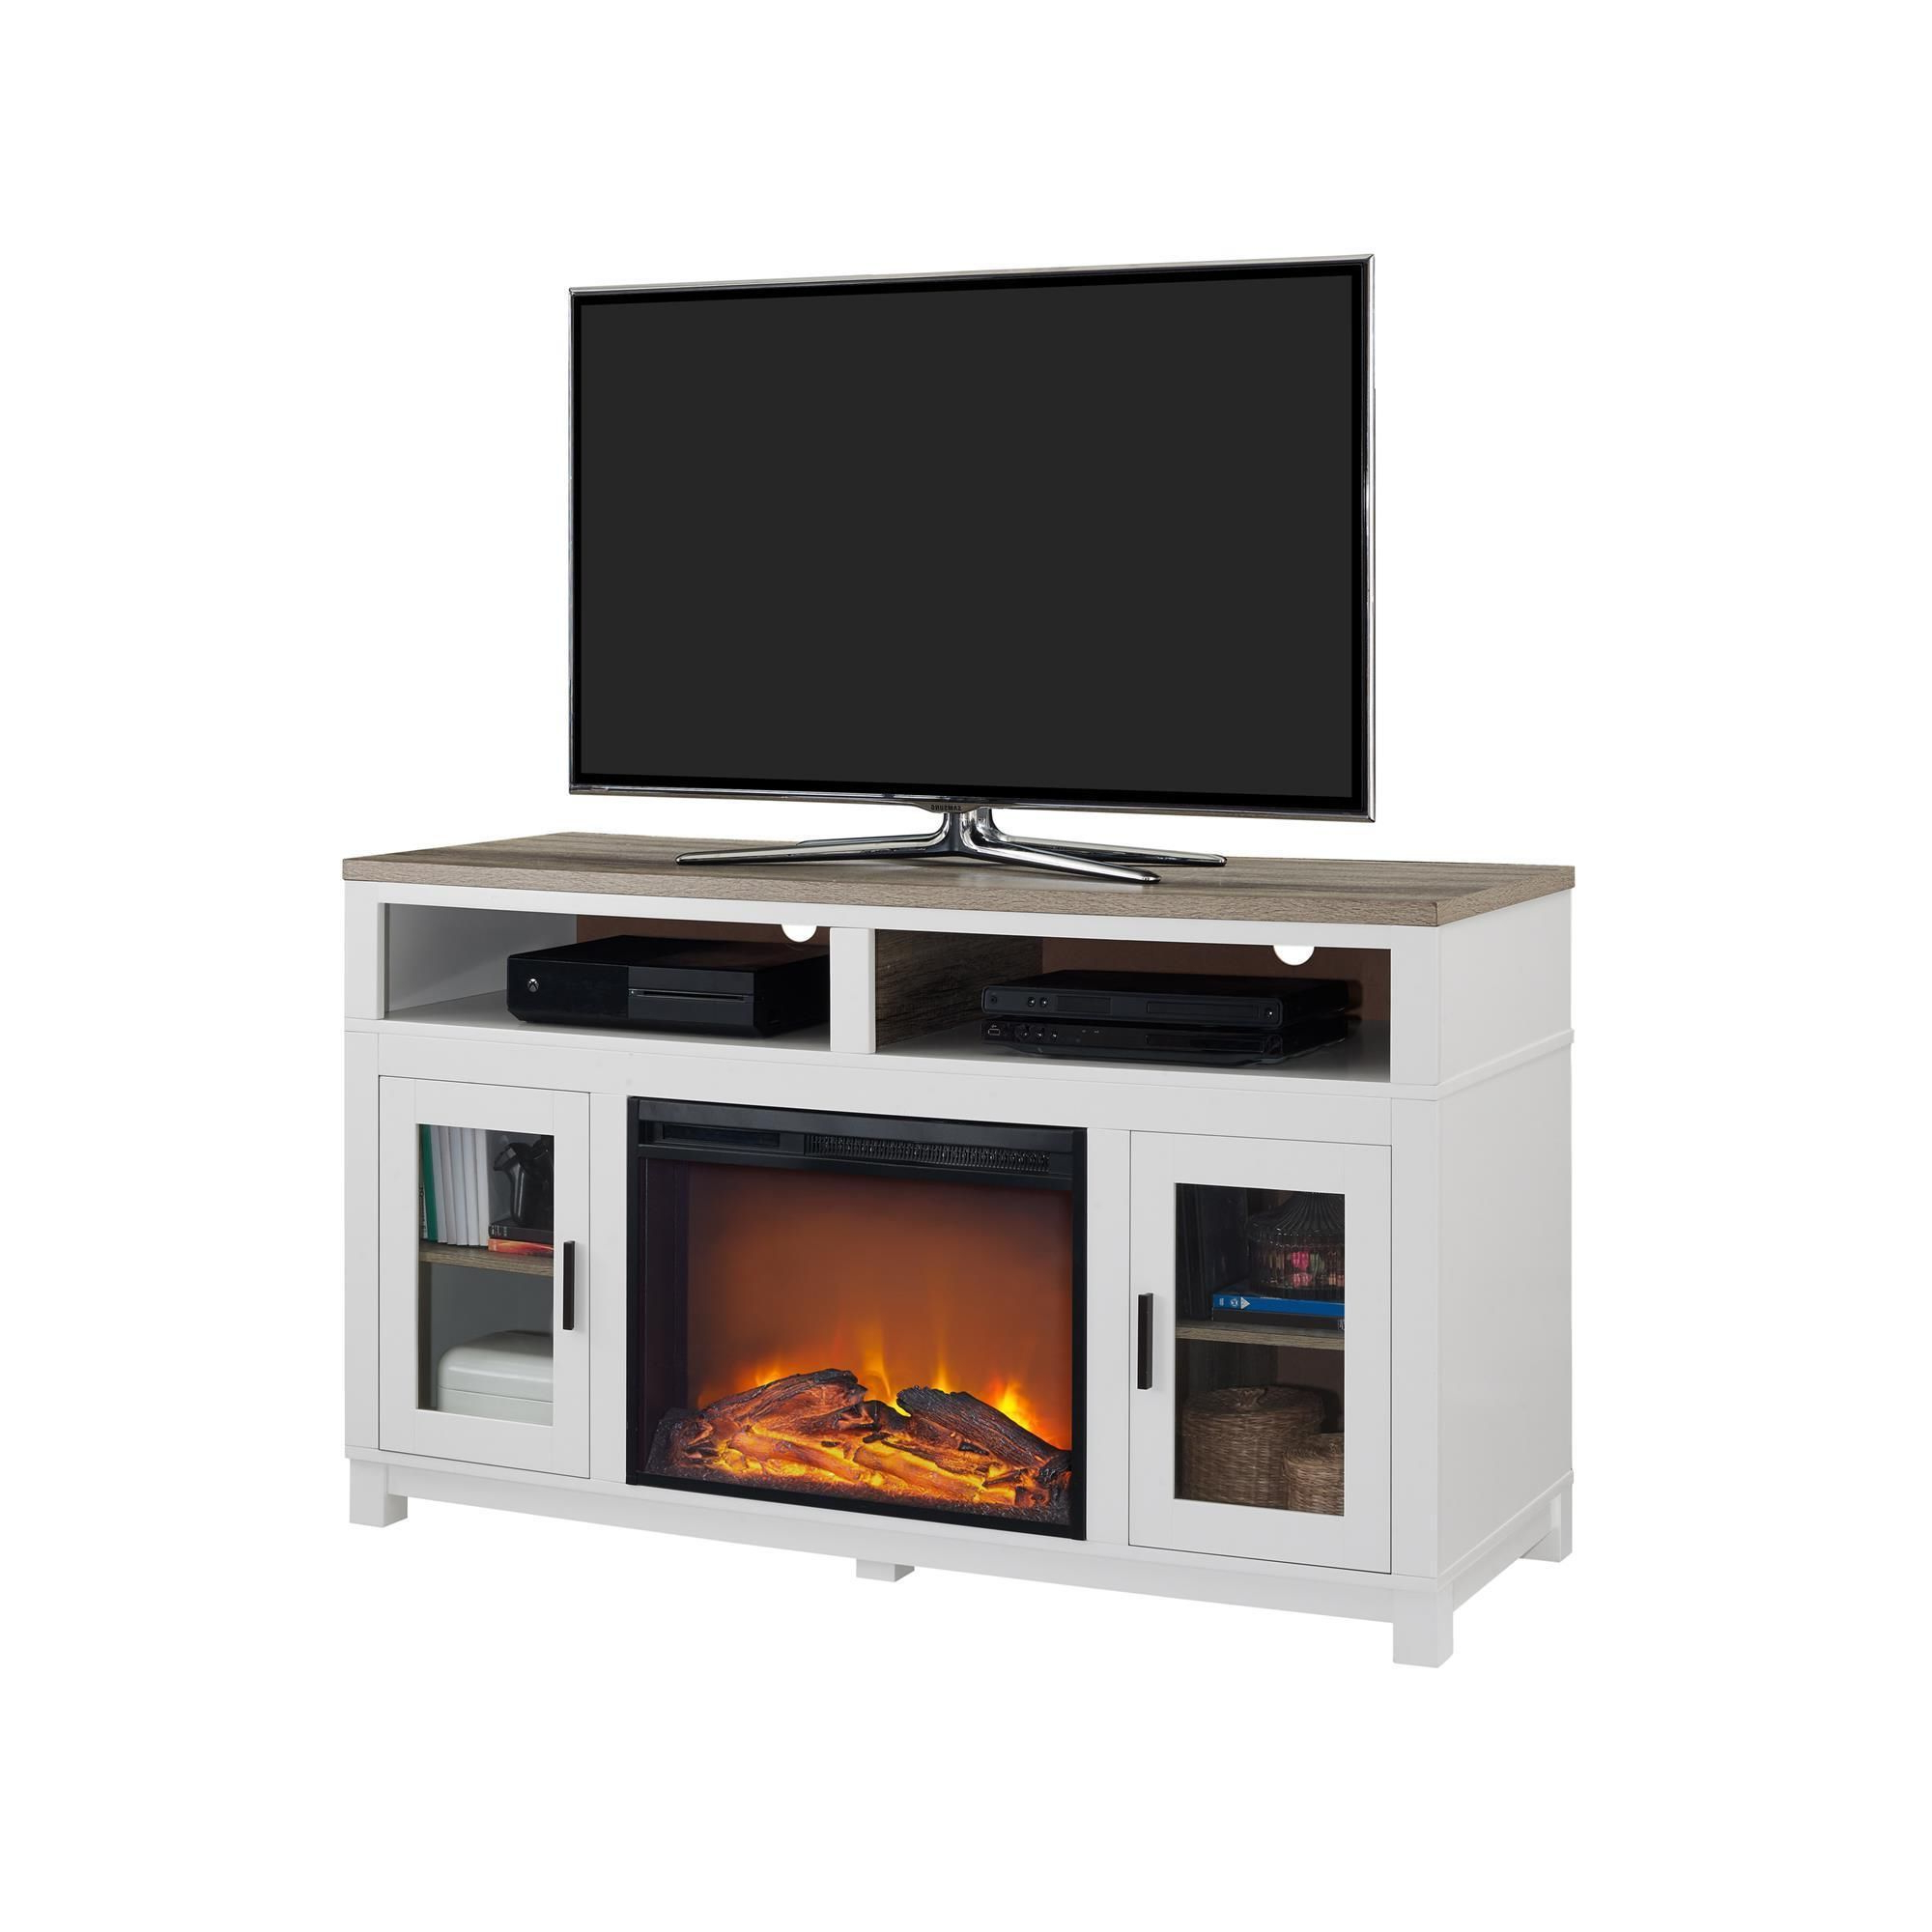 Ameriwood Home Carver Electric Fireplace Tv Stand For Tvs Up To 60 For Oxford 60 Inch Tv Stands (Gallery 15 of 20)